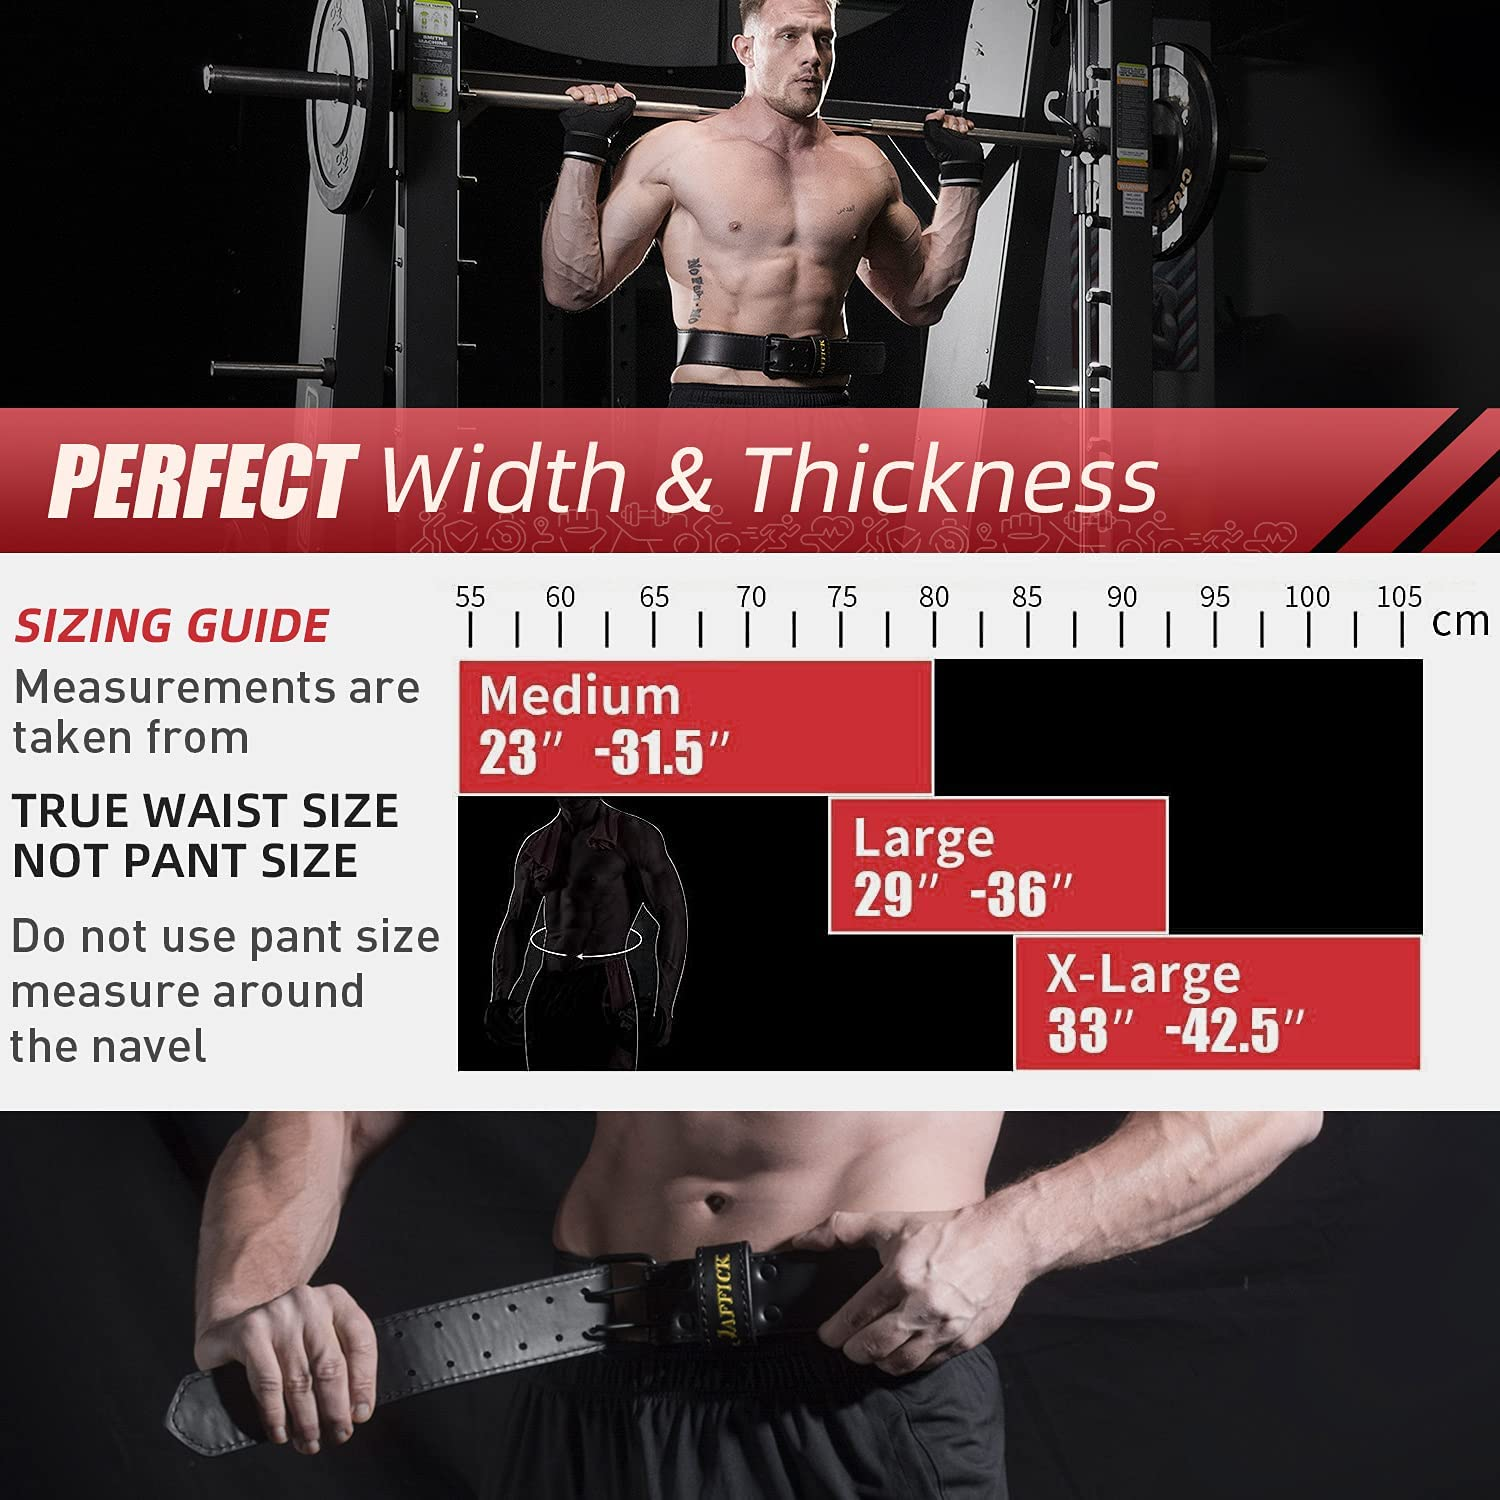 Jaffick Genuine Leather Weight Lifting Belt for Men Gym Weight Belt Lumbar Back Support Powerlifting Weightlifting Heavy Duty Workout Training Strength Training Equipment : Sports & Outdoors